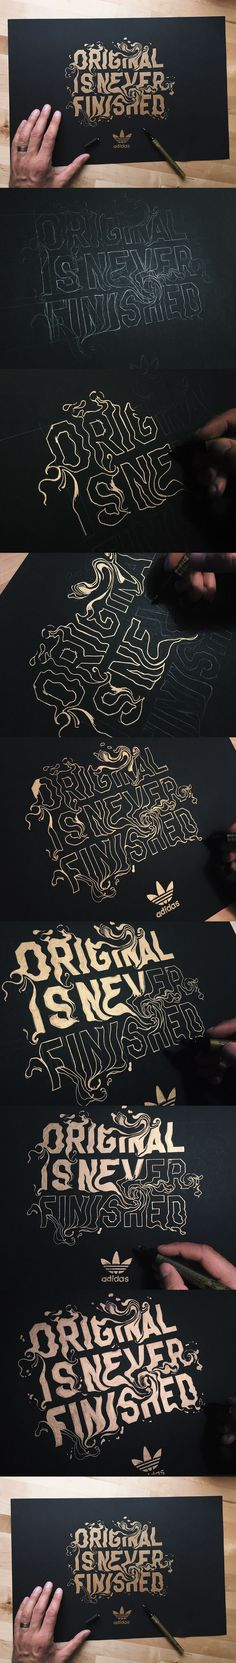 Words of Art – Typography Wall Art Typography Love, Creative Typography, Typography Quotes, Typography Inspiration, Typography Letters, Graphic Design Typography, Graphic Design Inspiration, Typo Design, Types Of Lettering